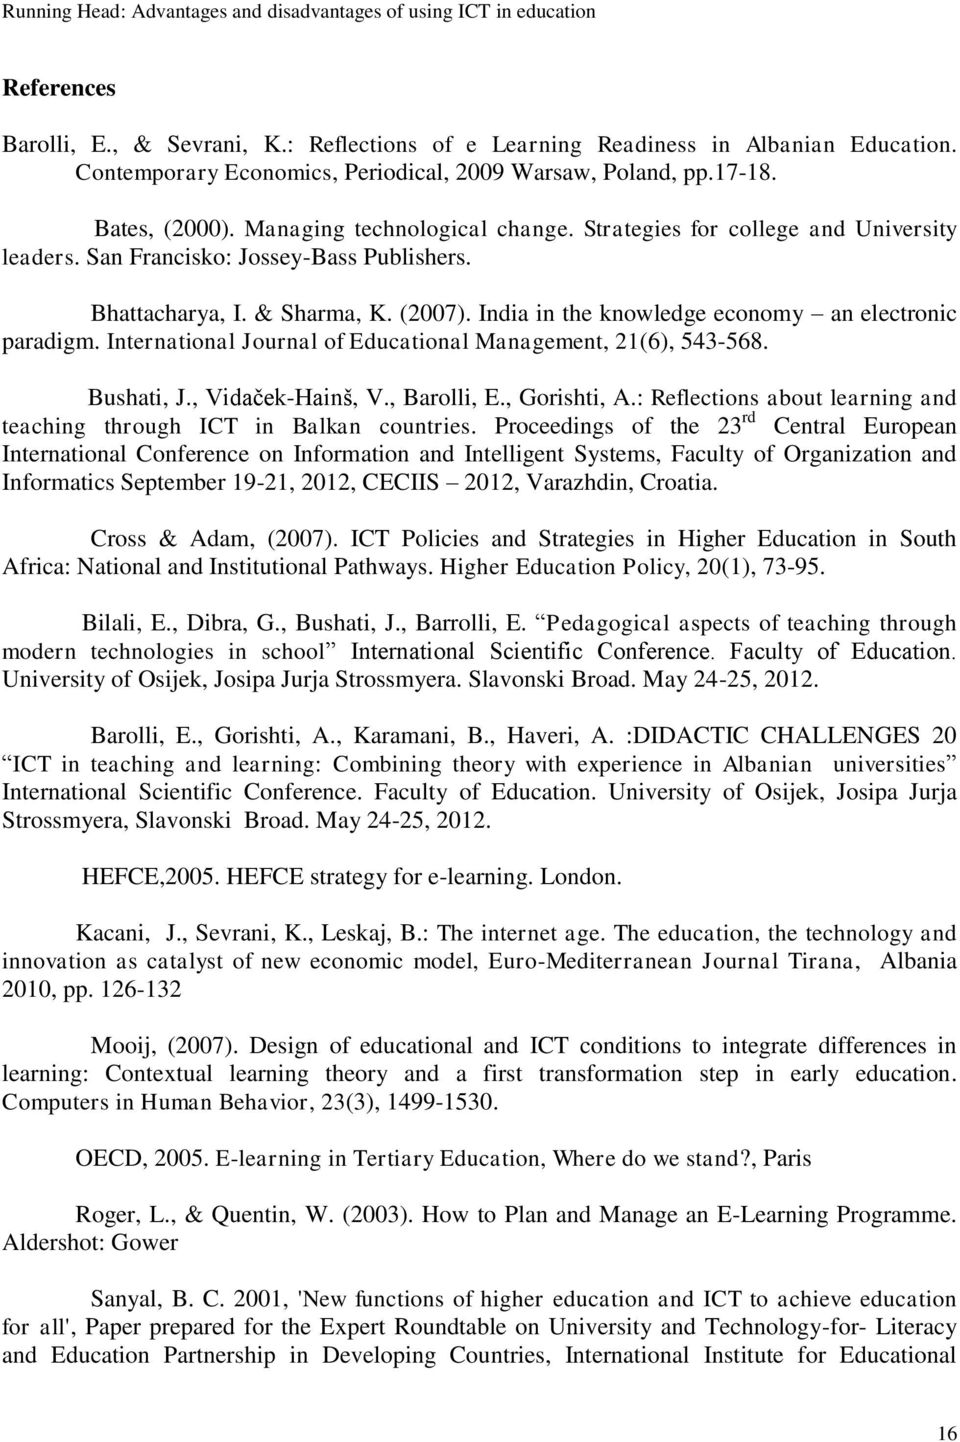 India in the knowledge economy an electronic paradigm. International Journal of Educational Management, 21(6), 543-568. Bushati, J., Vidaček-Hainš, V., Barolli, E., Gorishti, A.